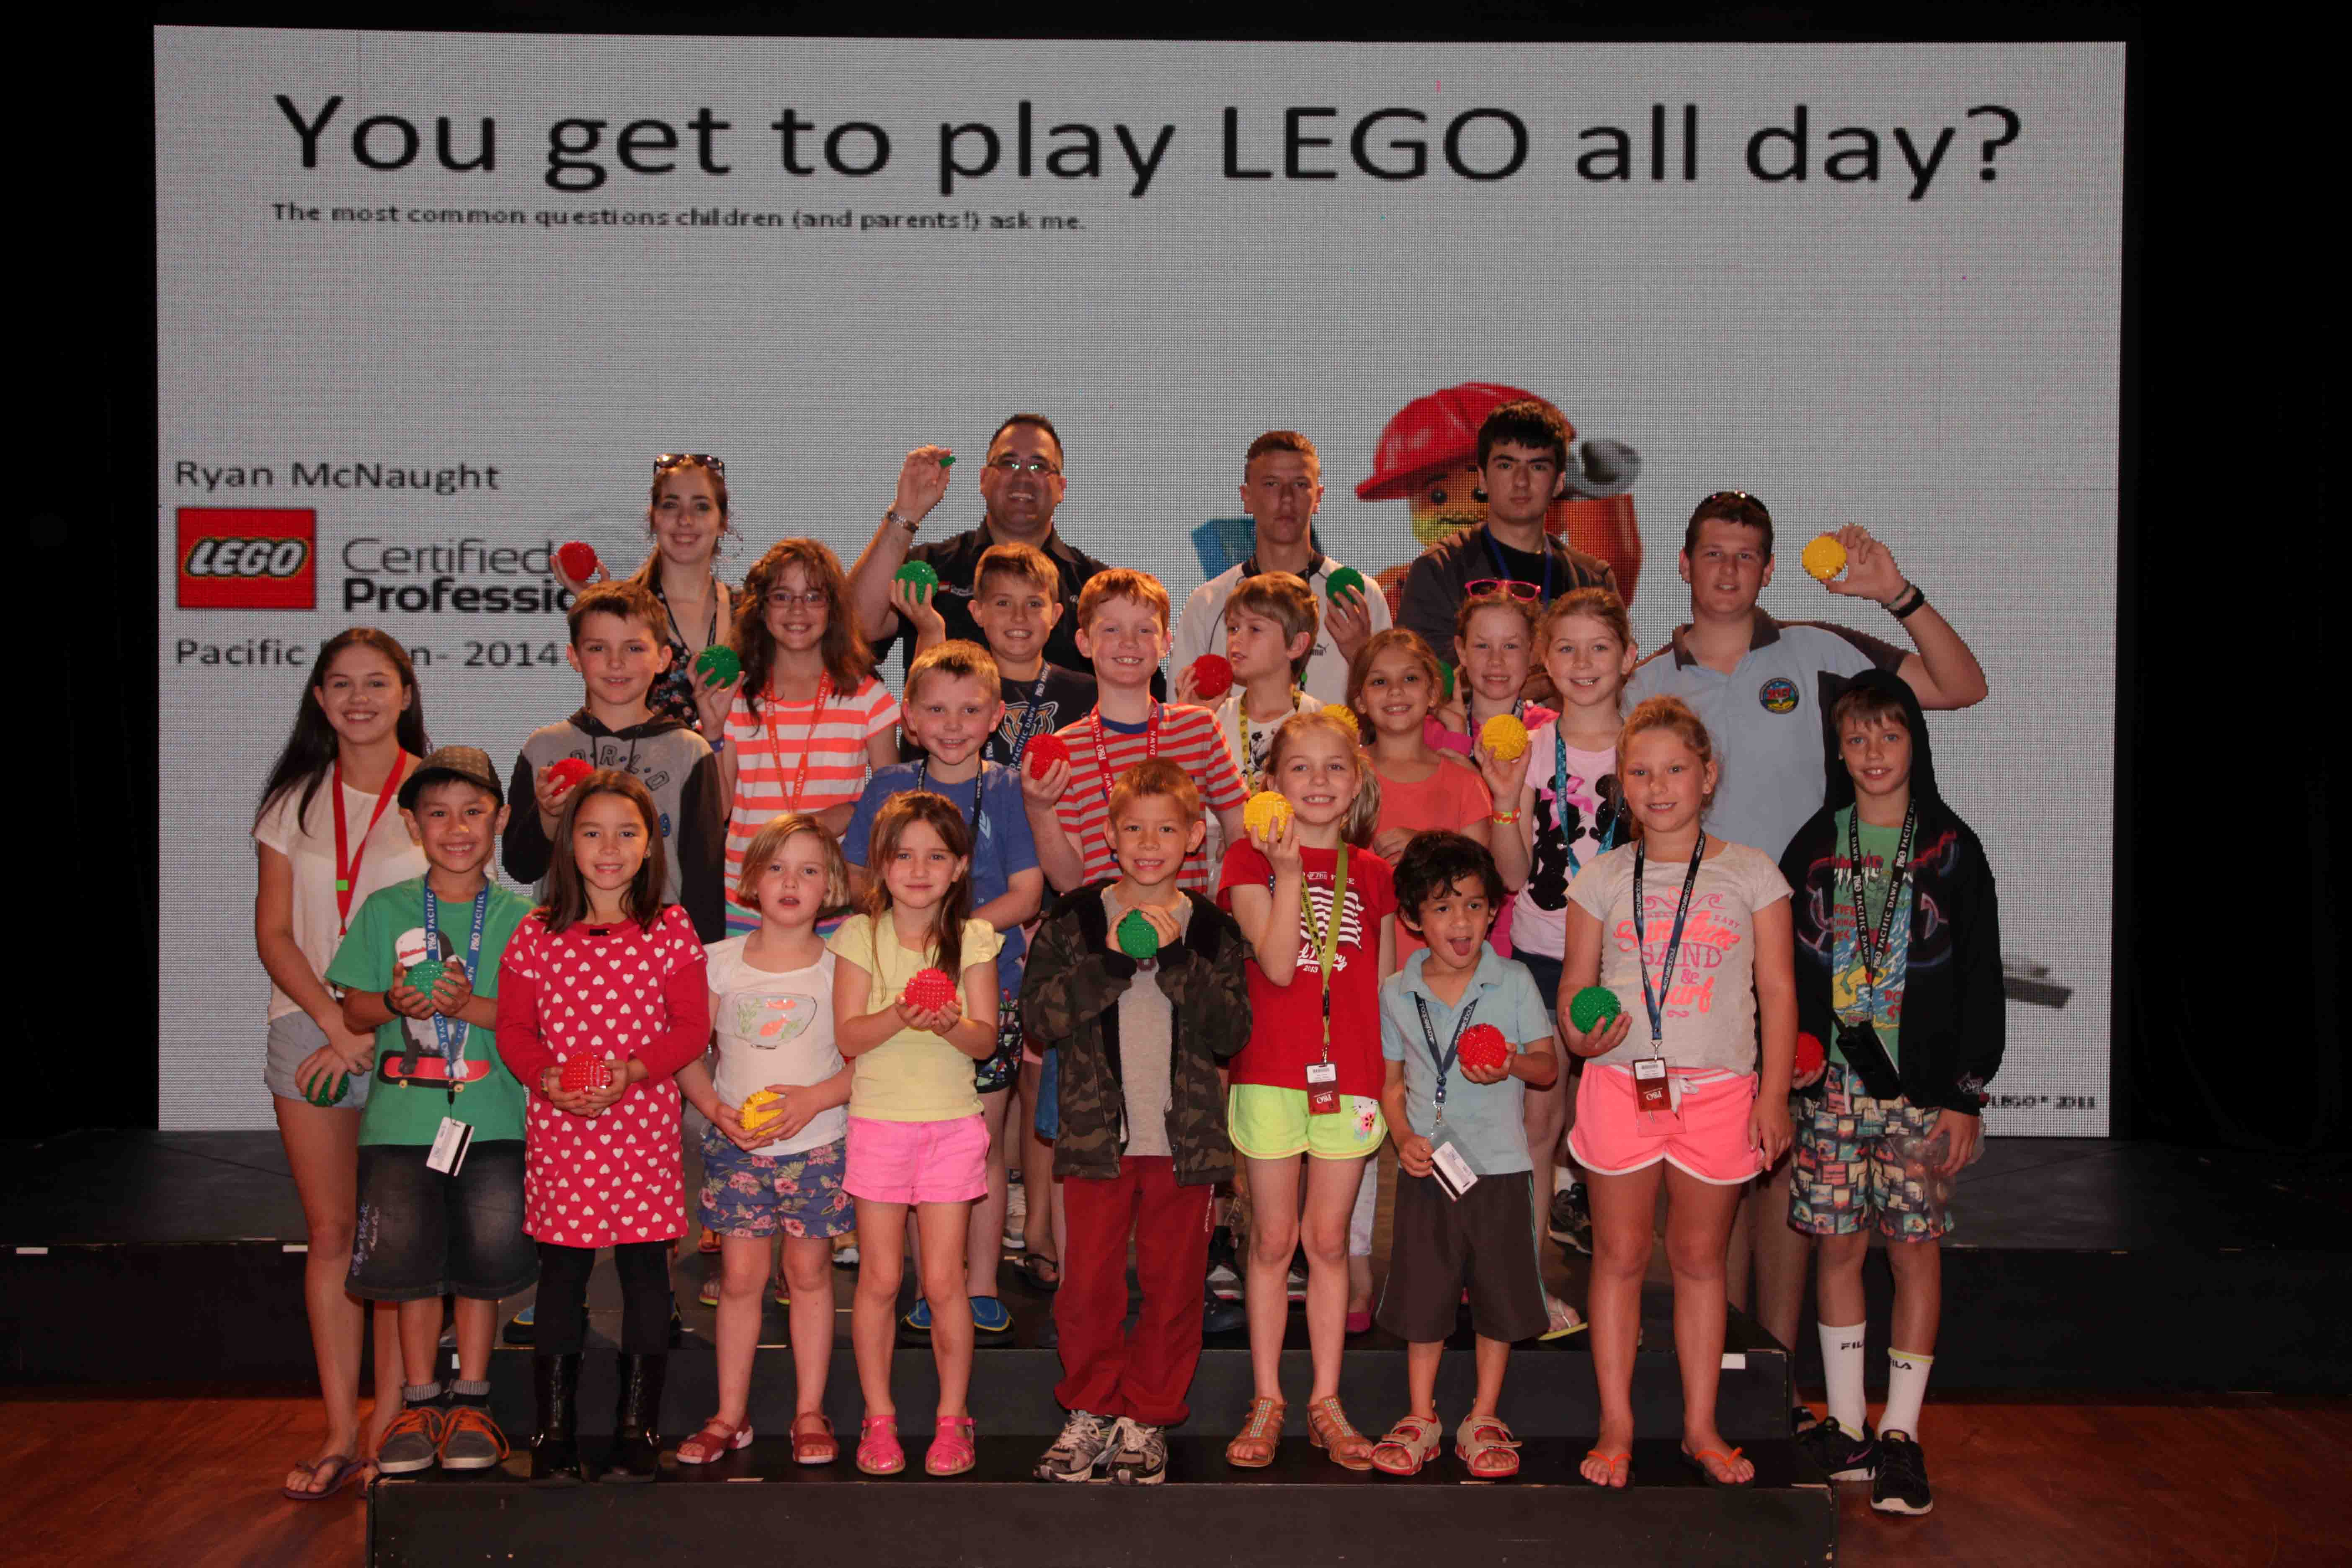 P&O Cruises Builds a Great School Holiday with LEGO® Fun